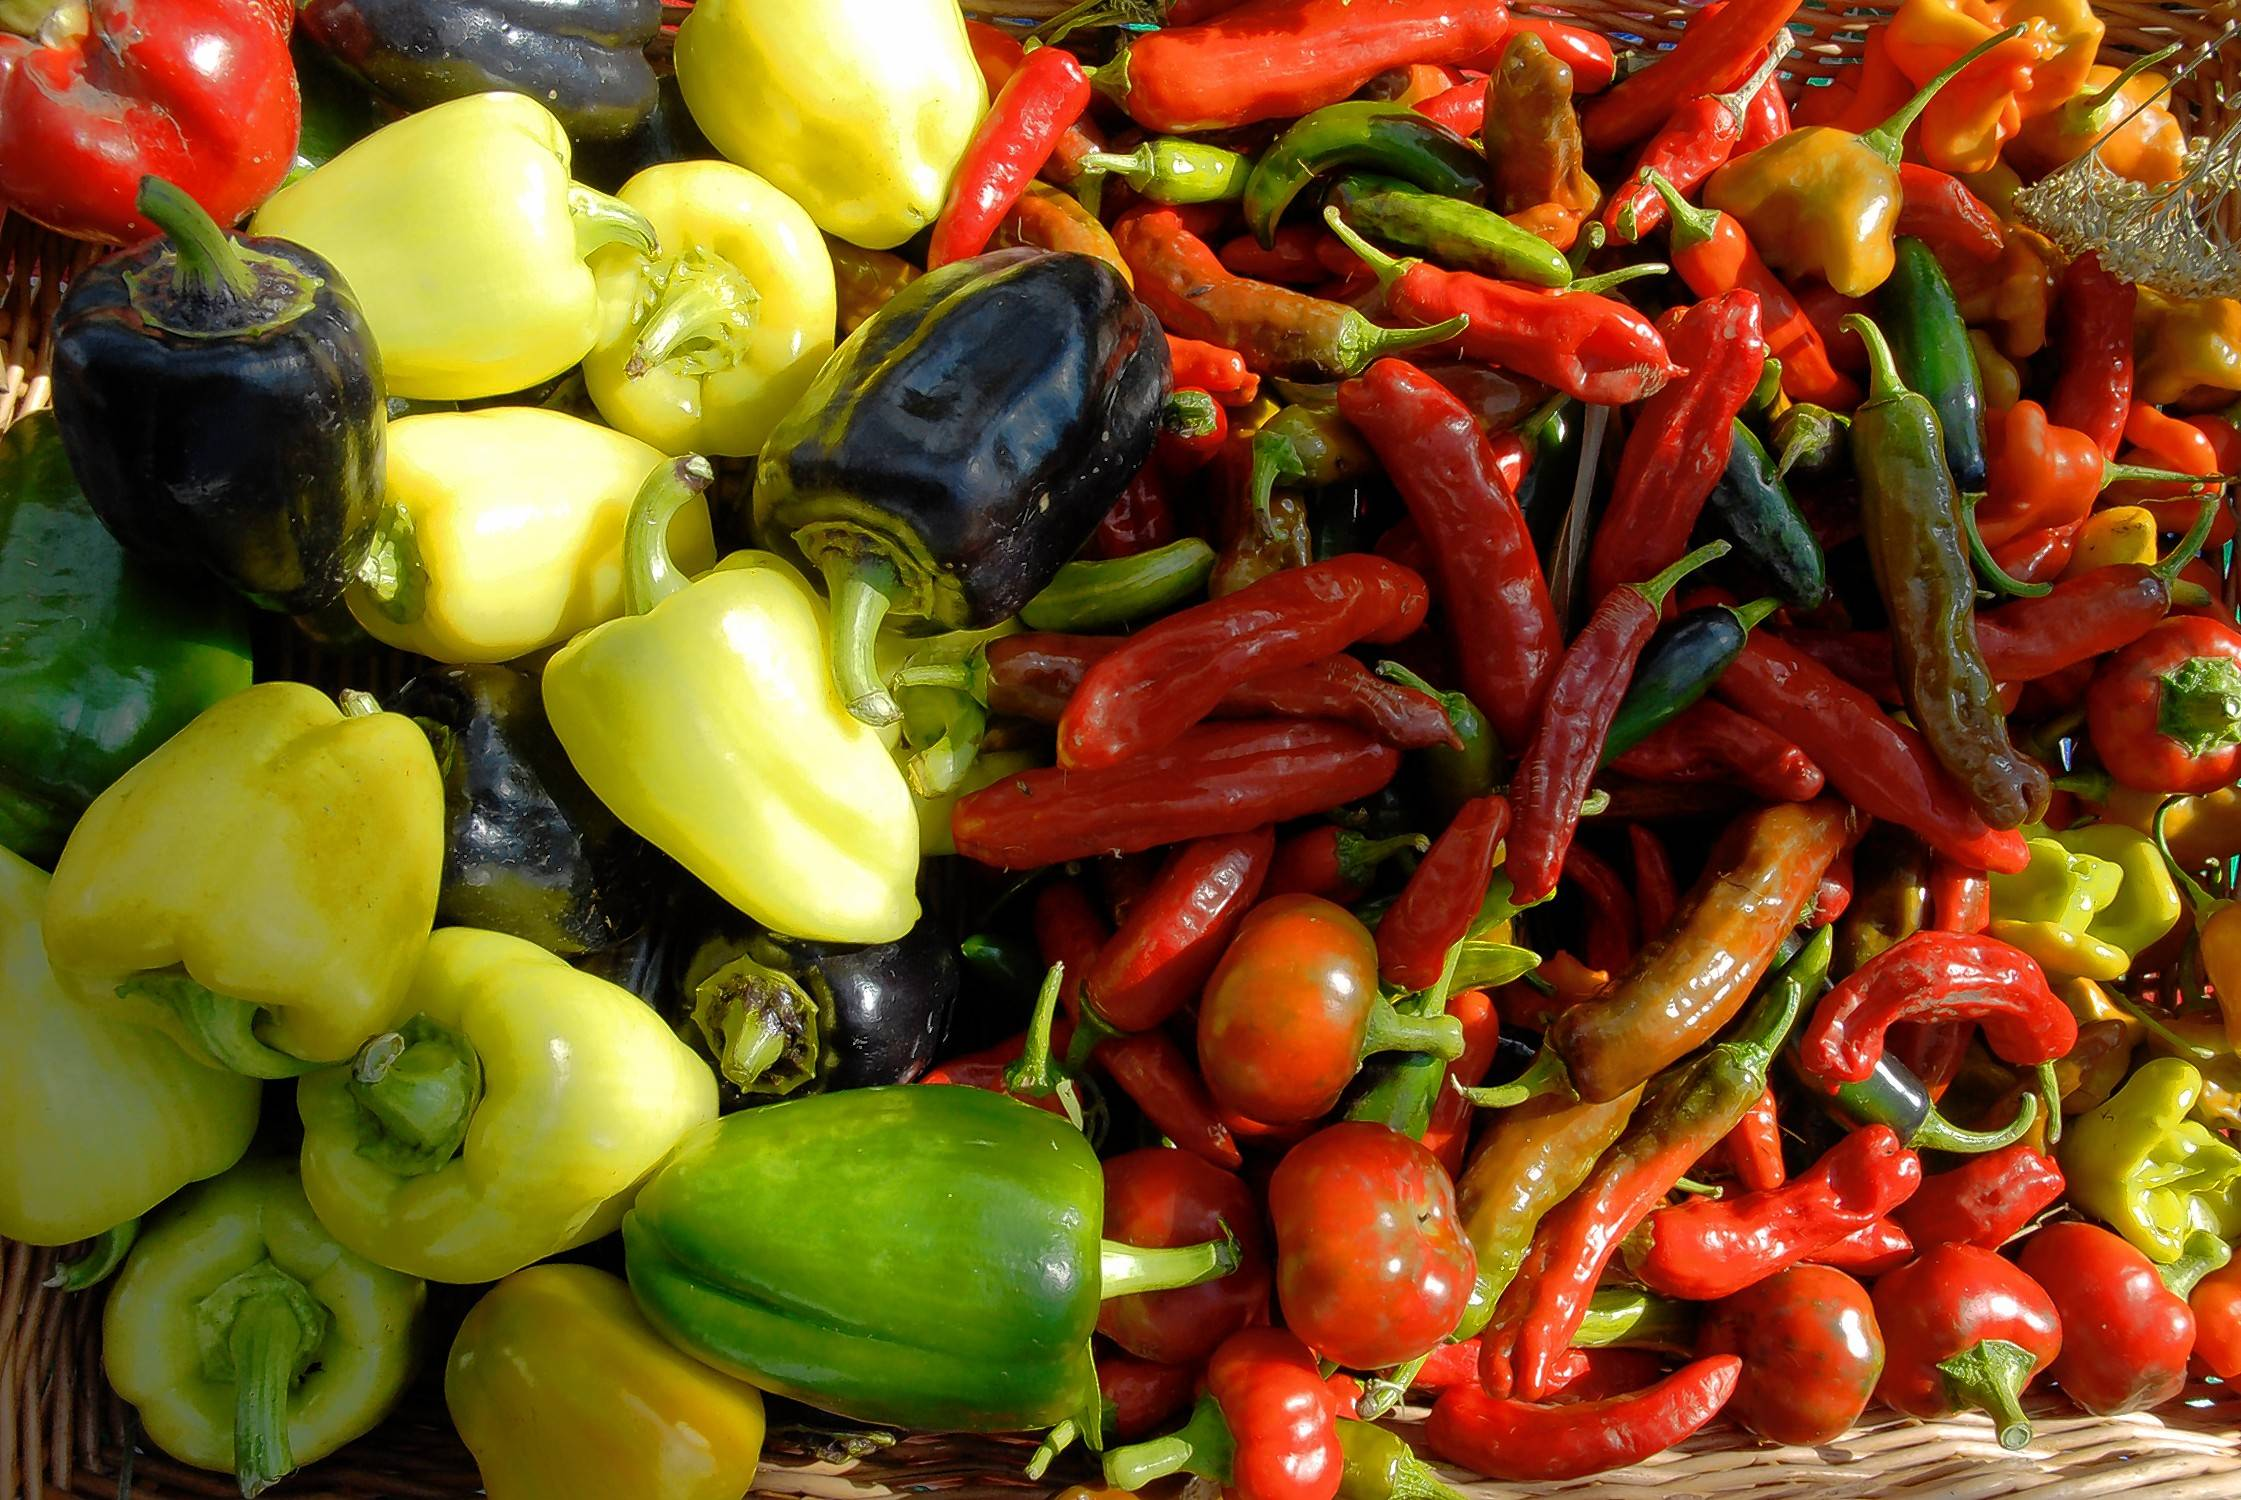 Warm-season crops like peppers and tomatoes should be picked as soon as possible.